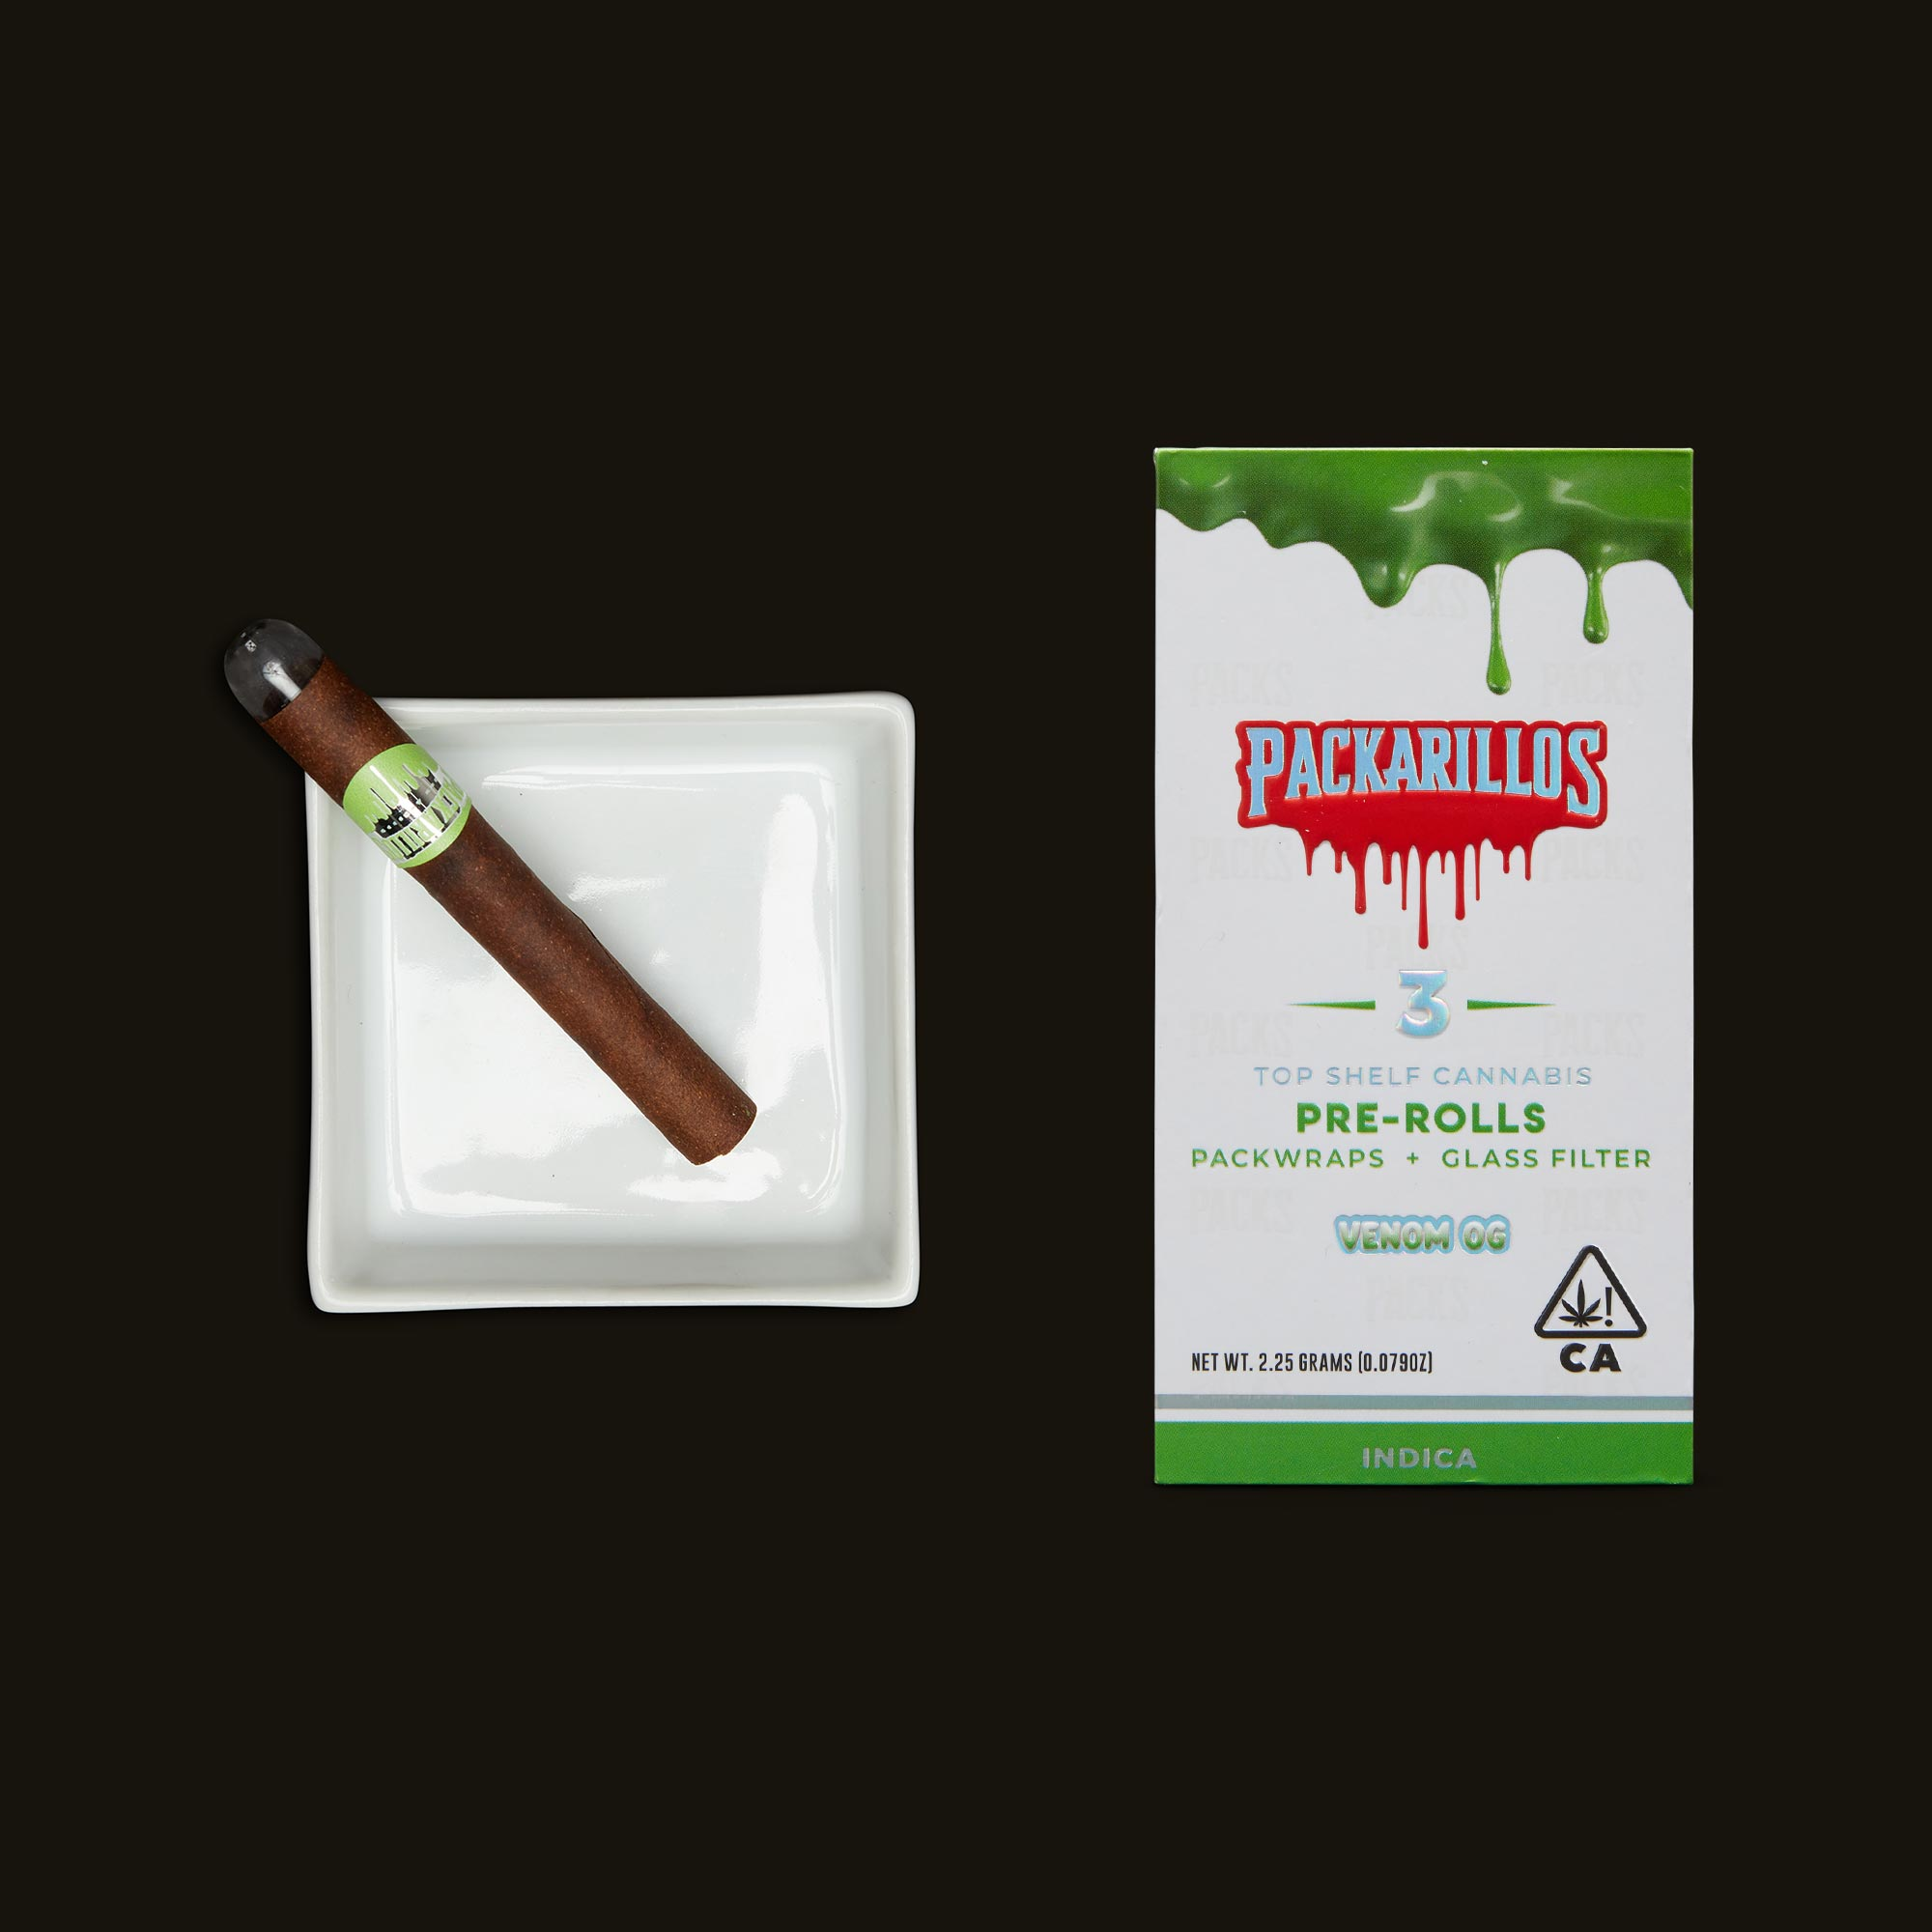 Packwoods Packarillos Venom OG Blunts